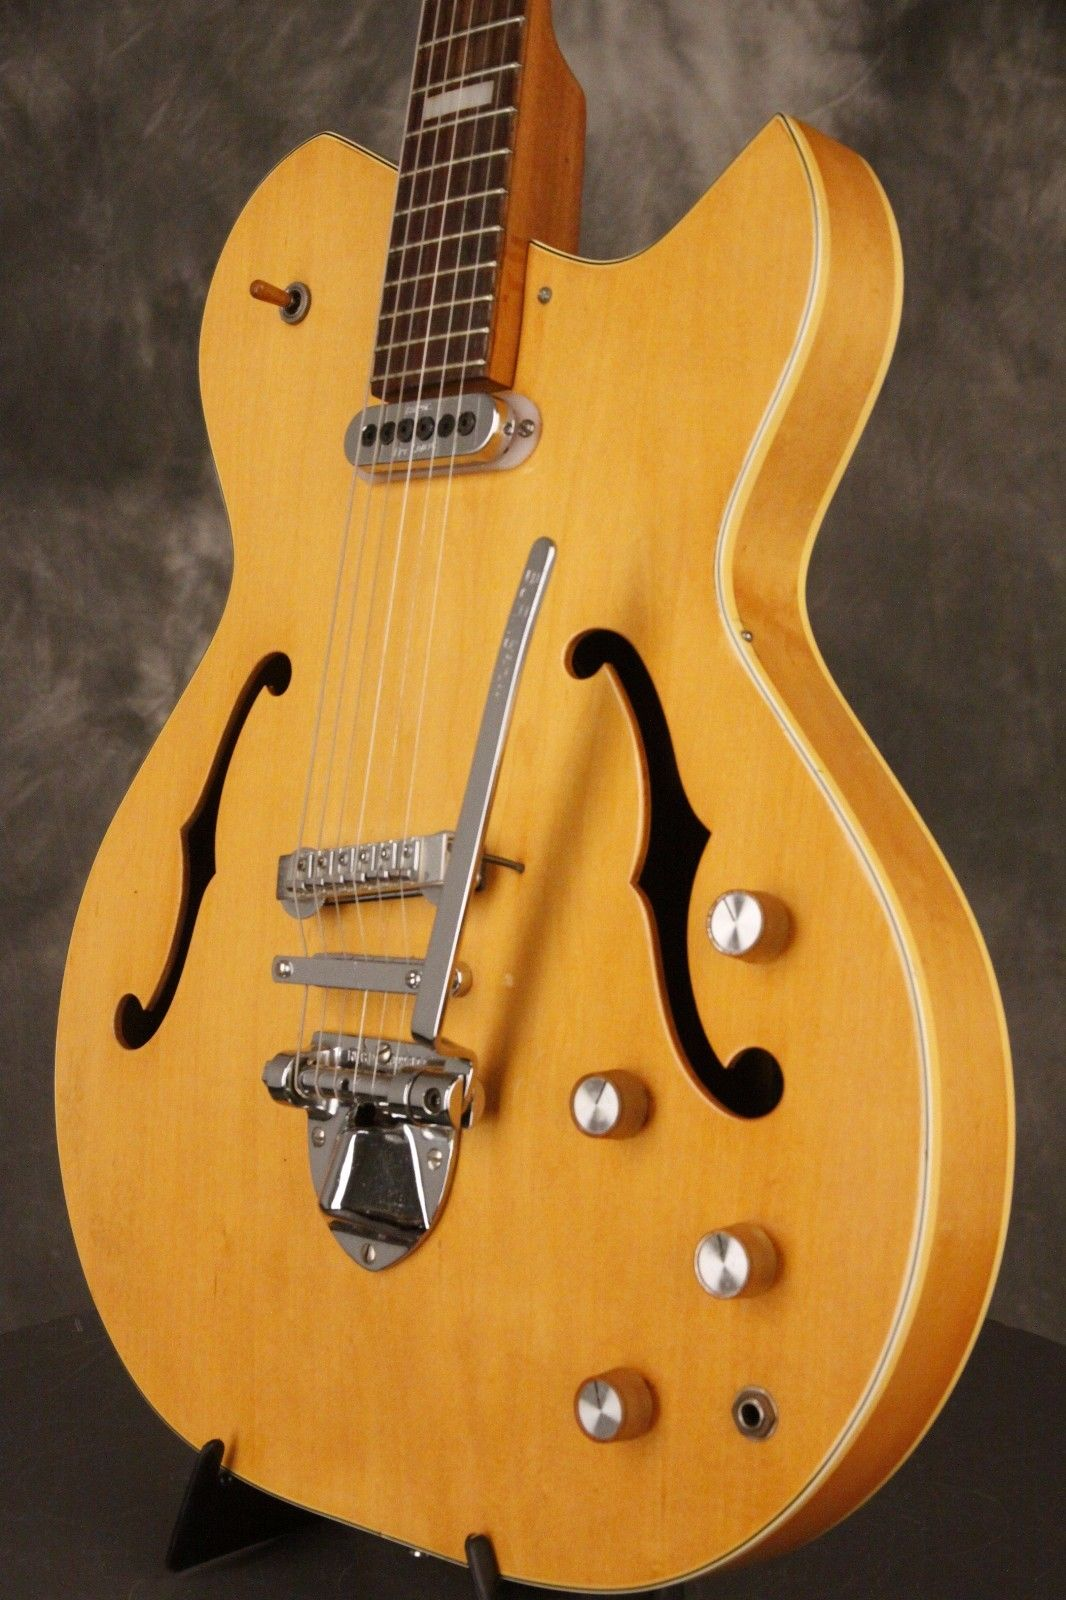 Baldwin 600 series guitar